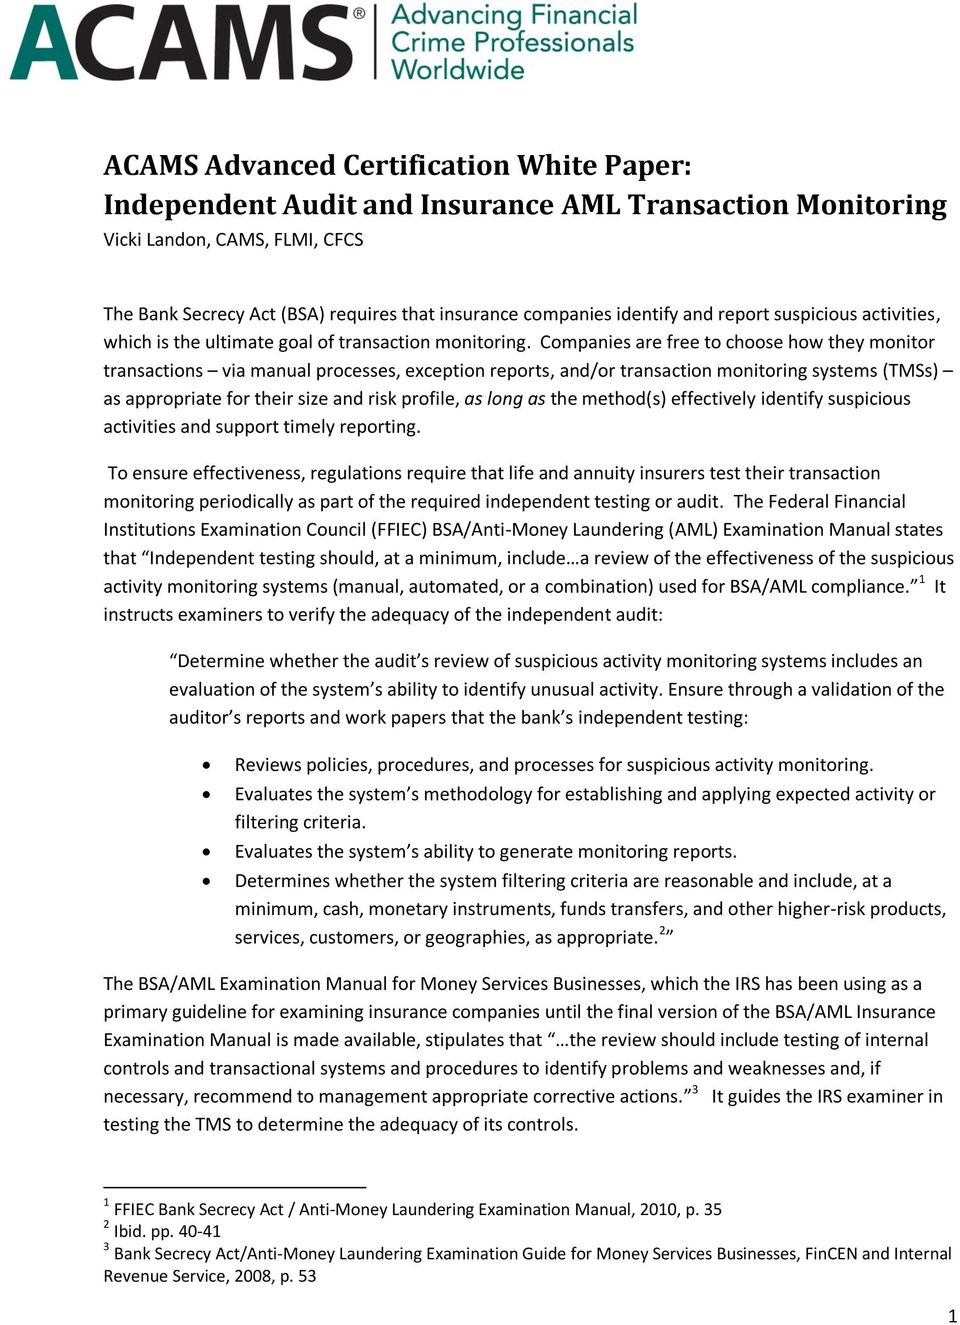 ACAMS Advanced Certification White Paper: Independent Audit